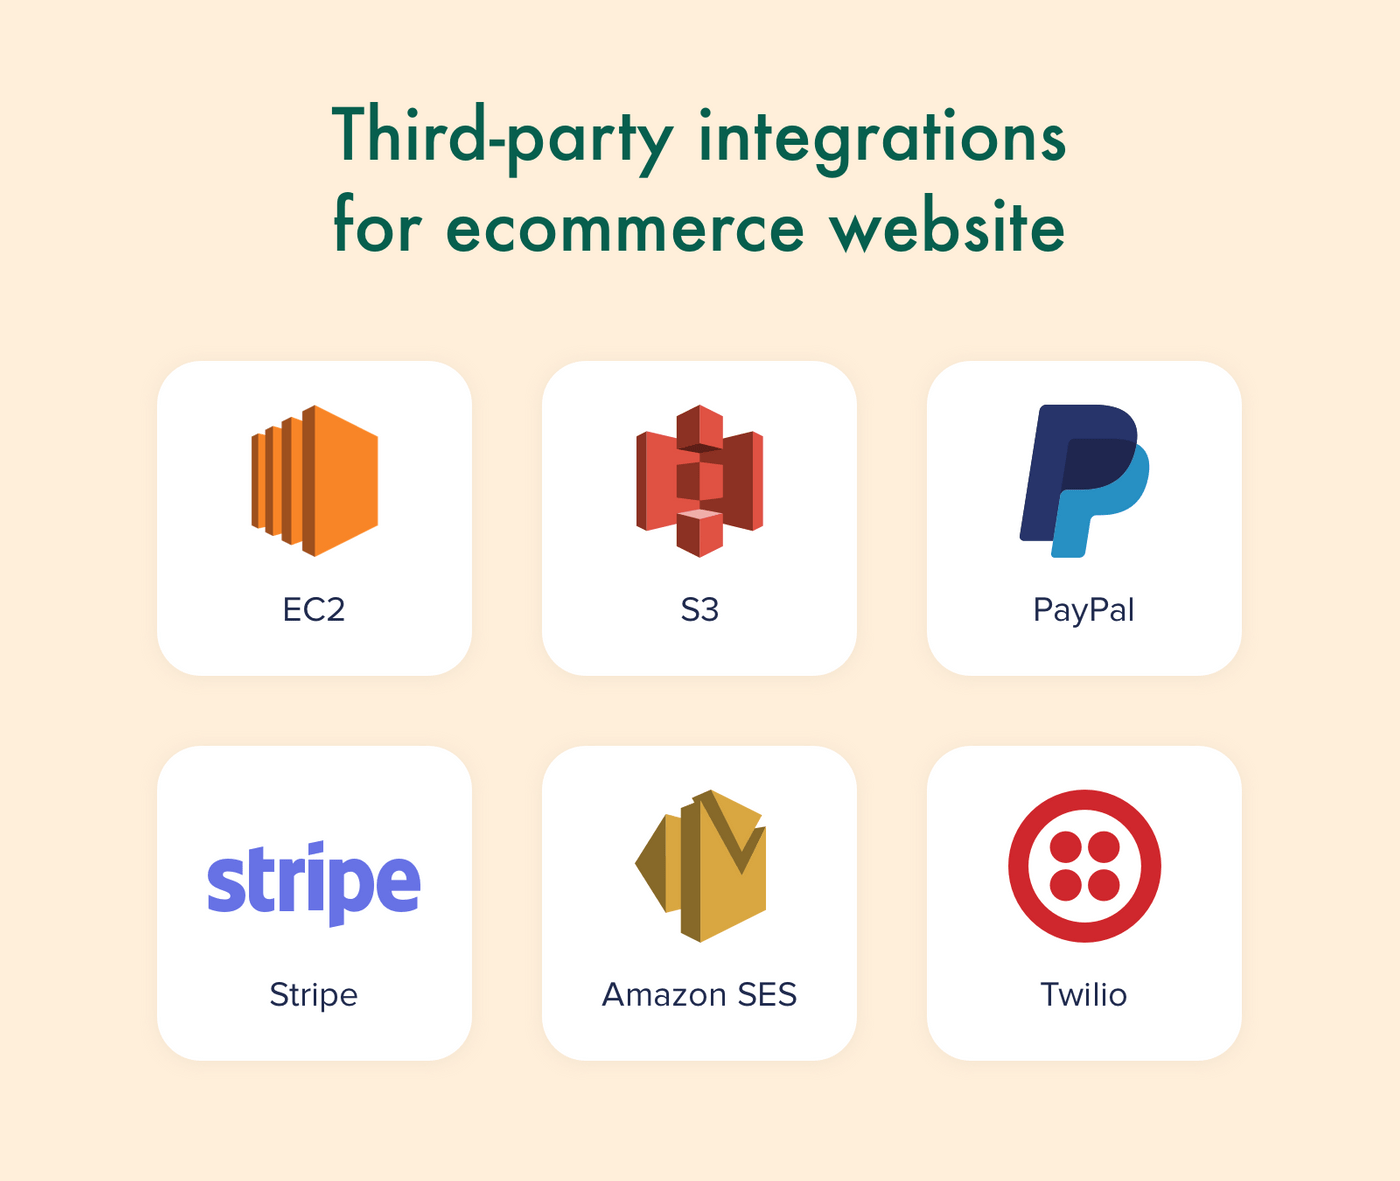 Ecommerce website integrations